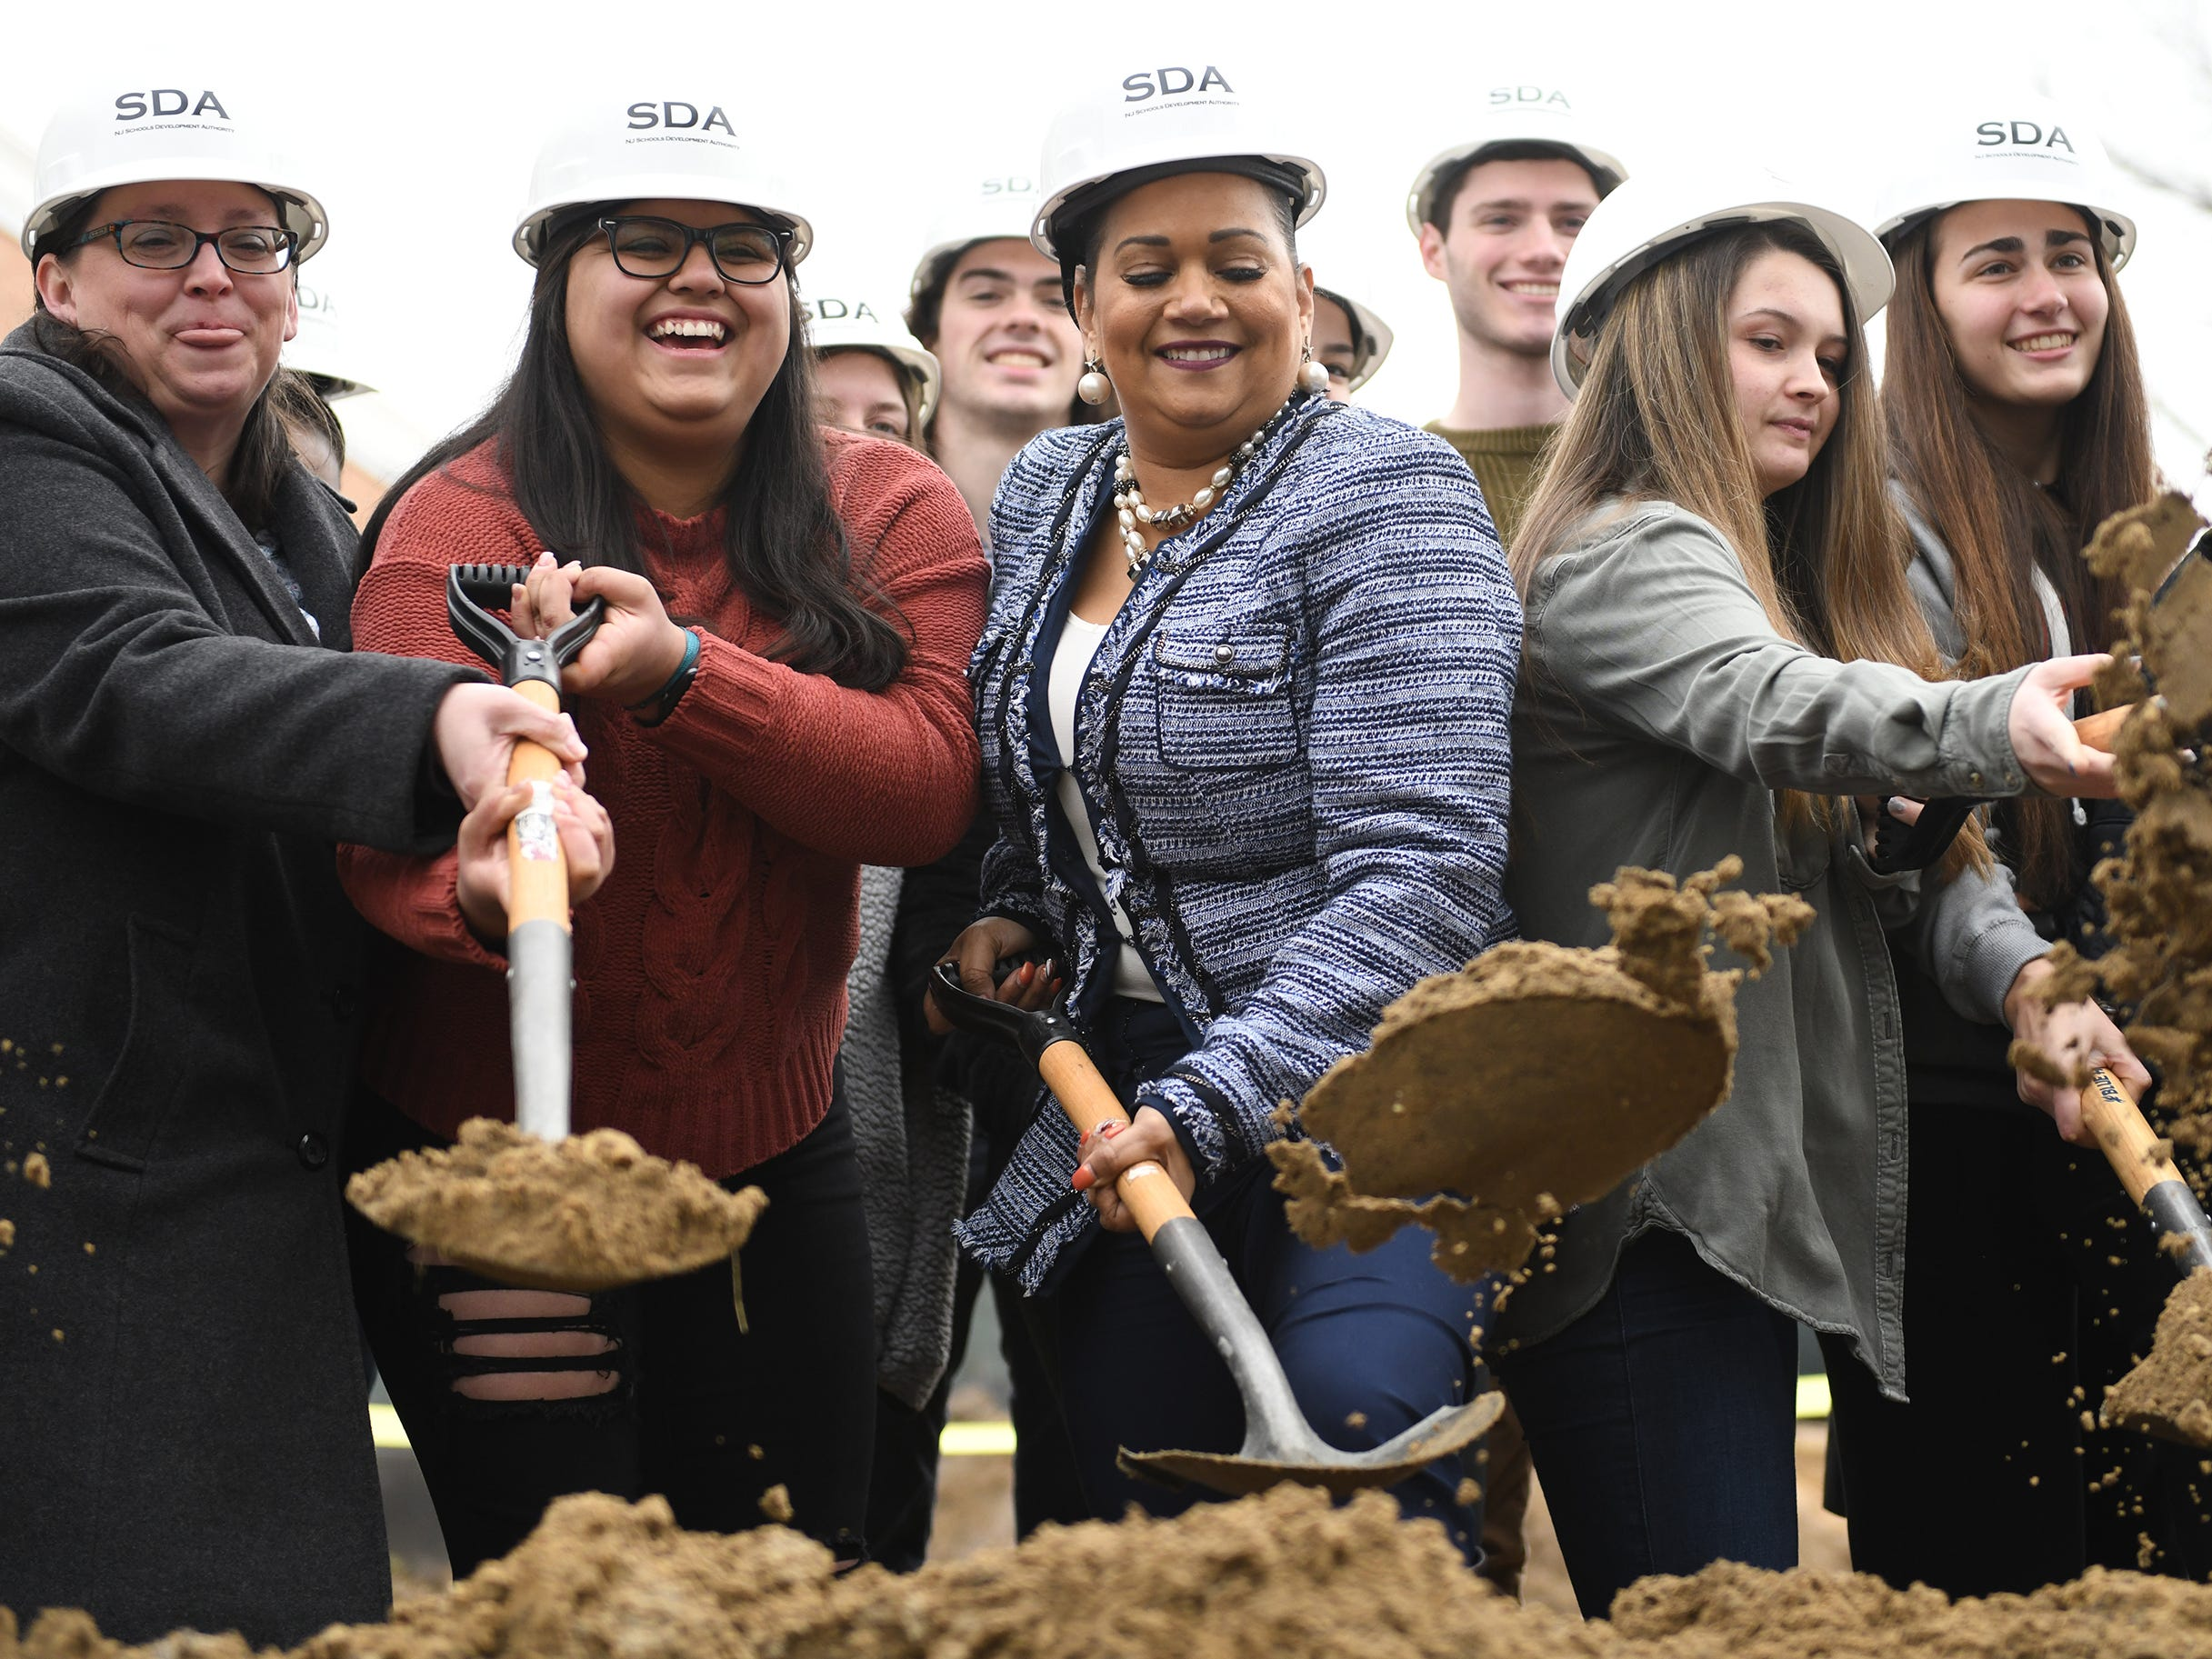 Lizette Delgado (center), CEO of the New Jersey Schools Development Authority, takes part in the groundbreaking ceremony at Millville High School on Thursday, Feb. 7, 2019.